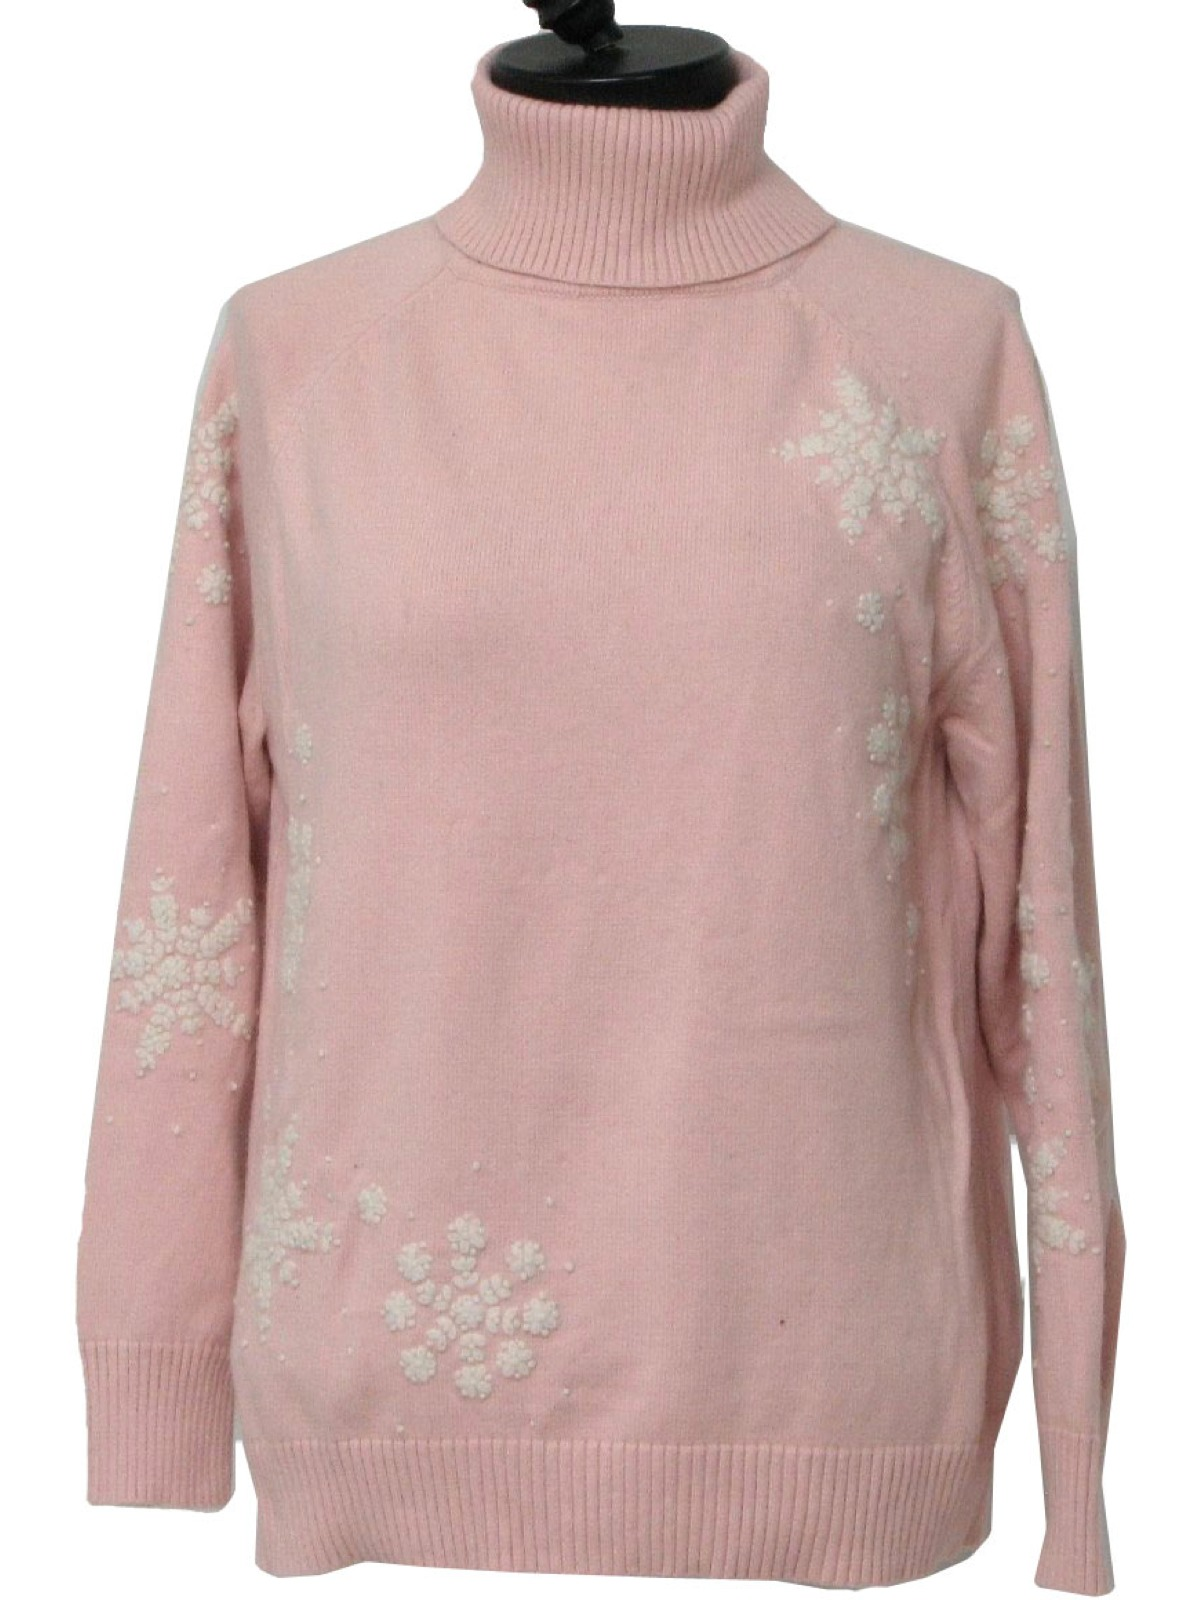 Womens Ugly Christmas Sweater: -Eddie Bauer- Womens pink and white ...